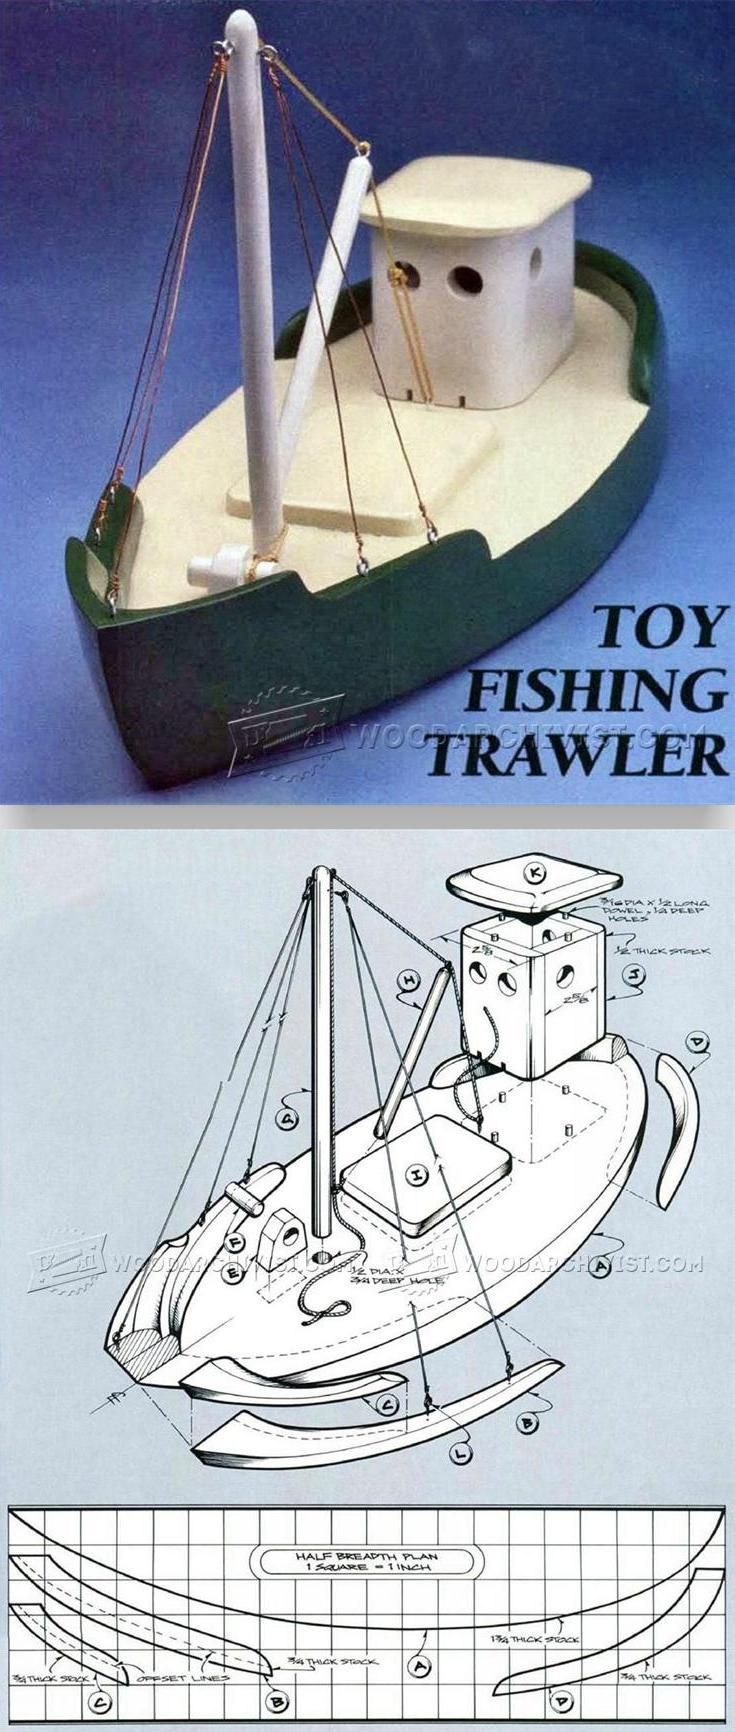 wooden toy fishing trawler - wooden toys plans and projects